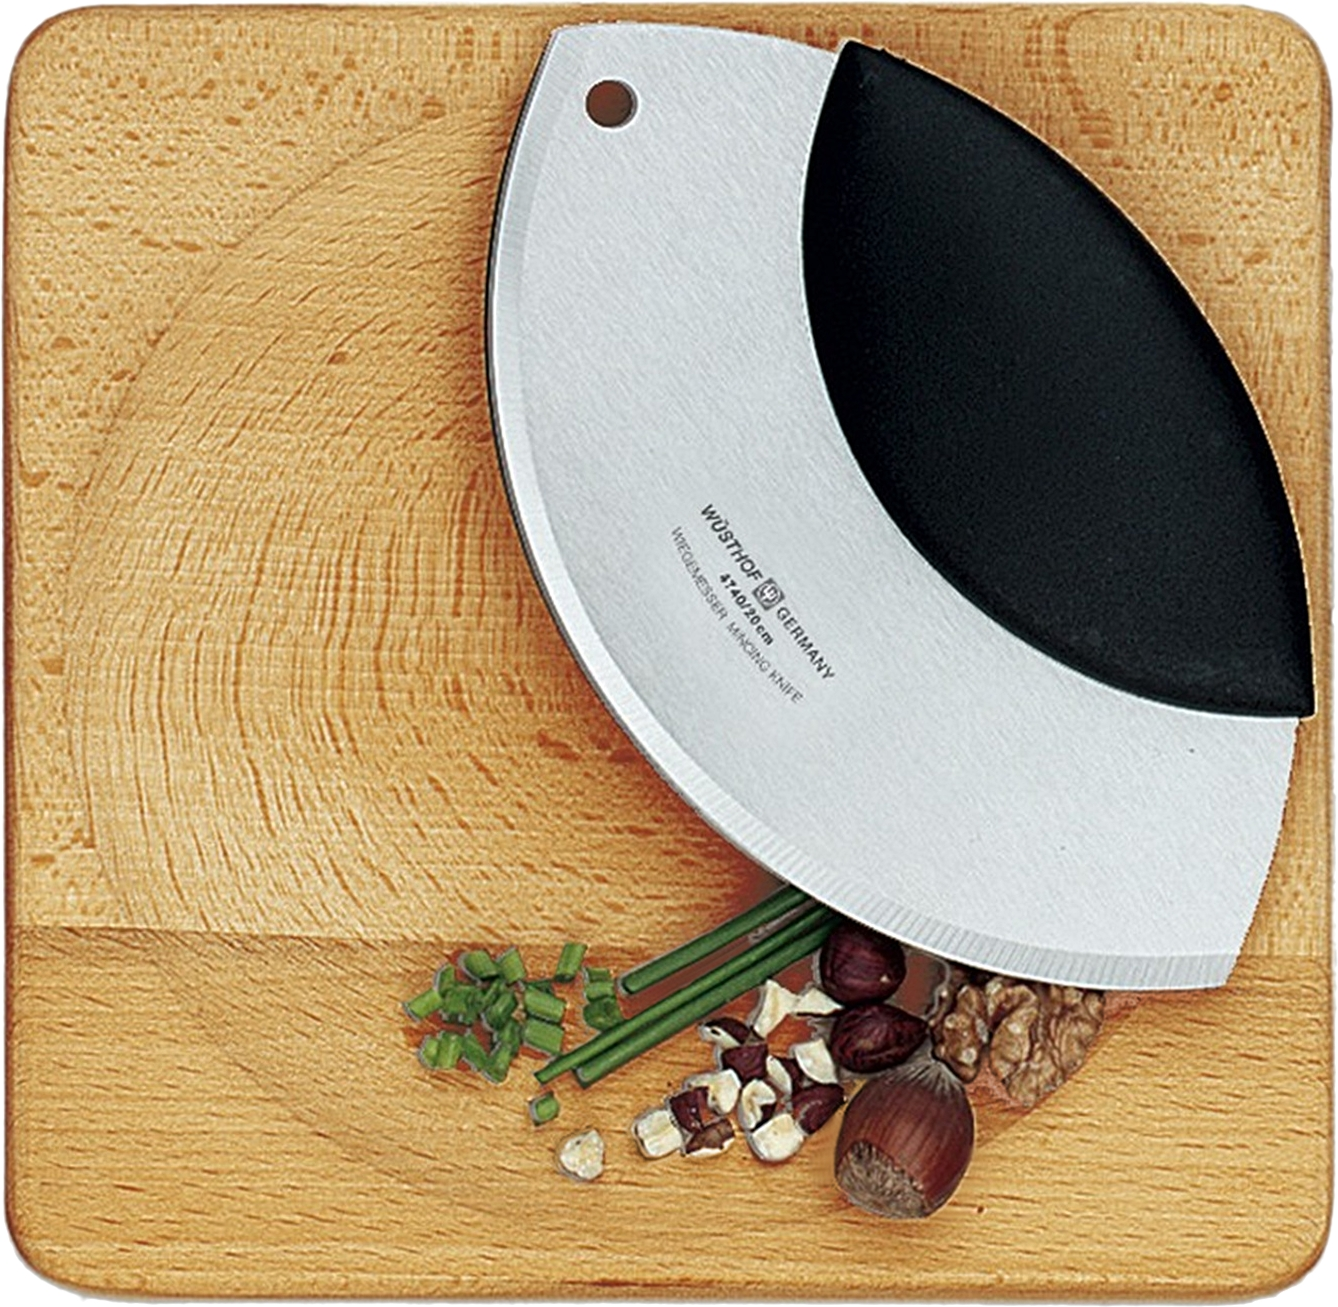 Wusthof 2 Piece High Carbon Stainless Steel Mezzaluna and Cutting Board Mincing Set